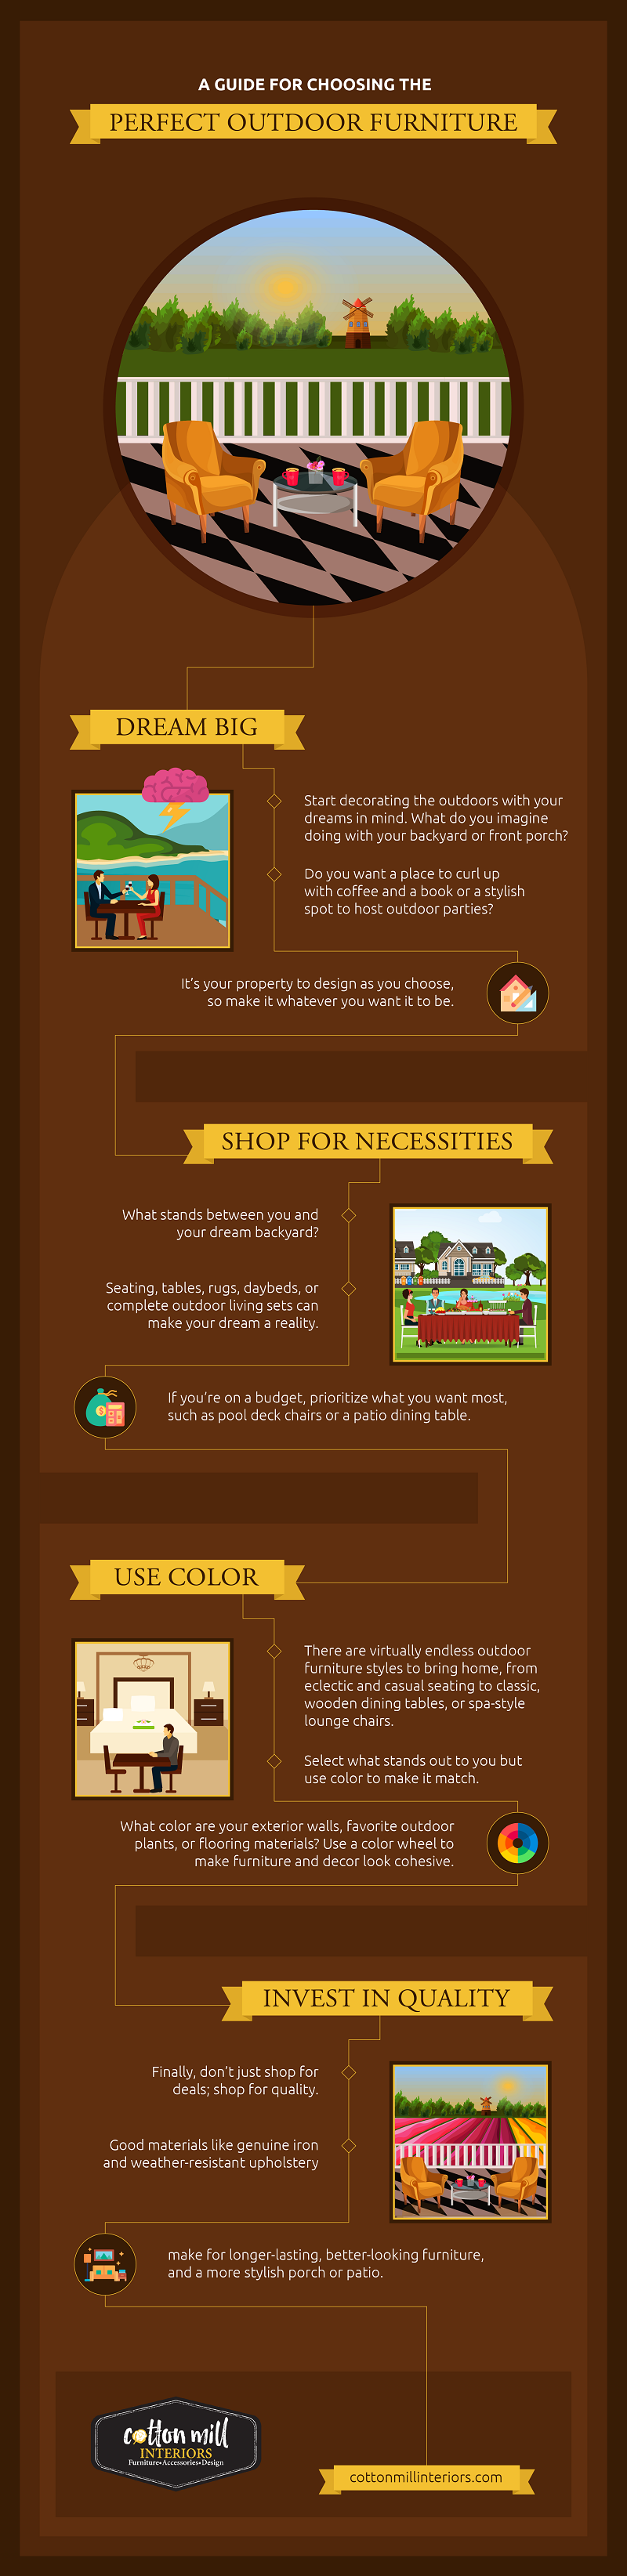 1668364_Cotton Mill Interiors_A Guide for Choosing the Perfect Outdoor Furniture-01 (1).png